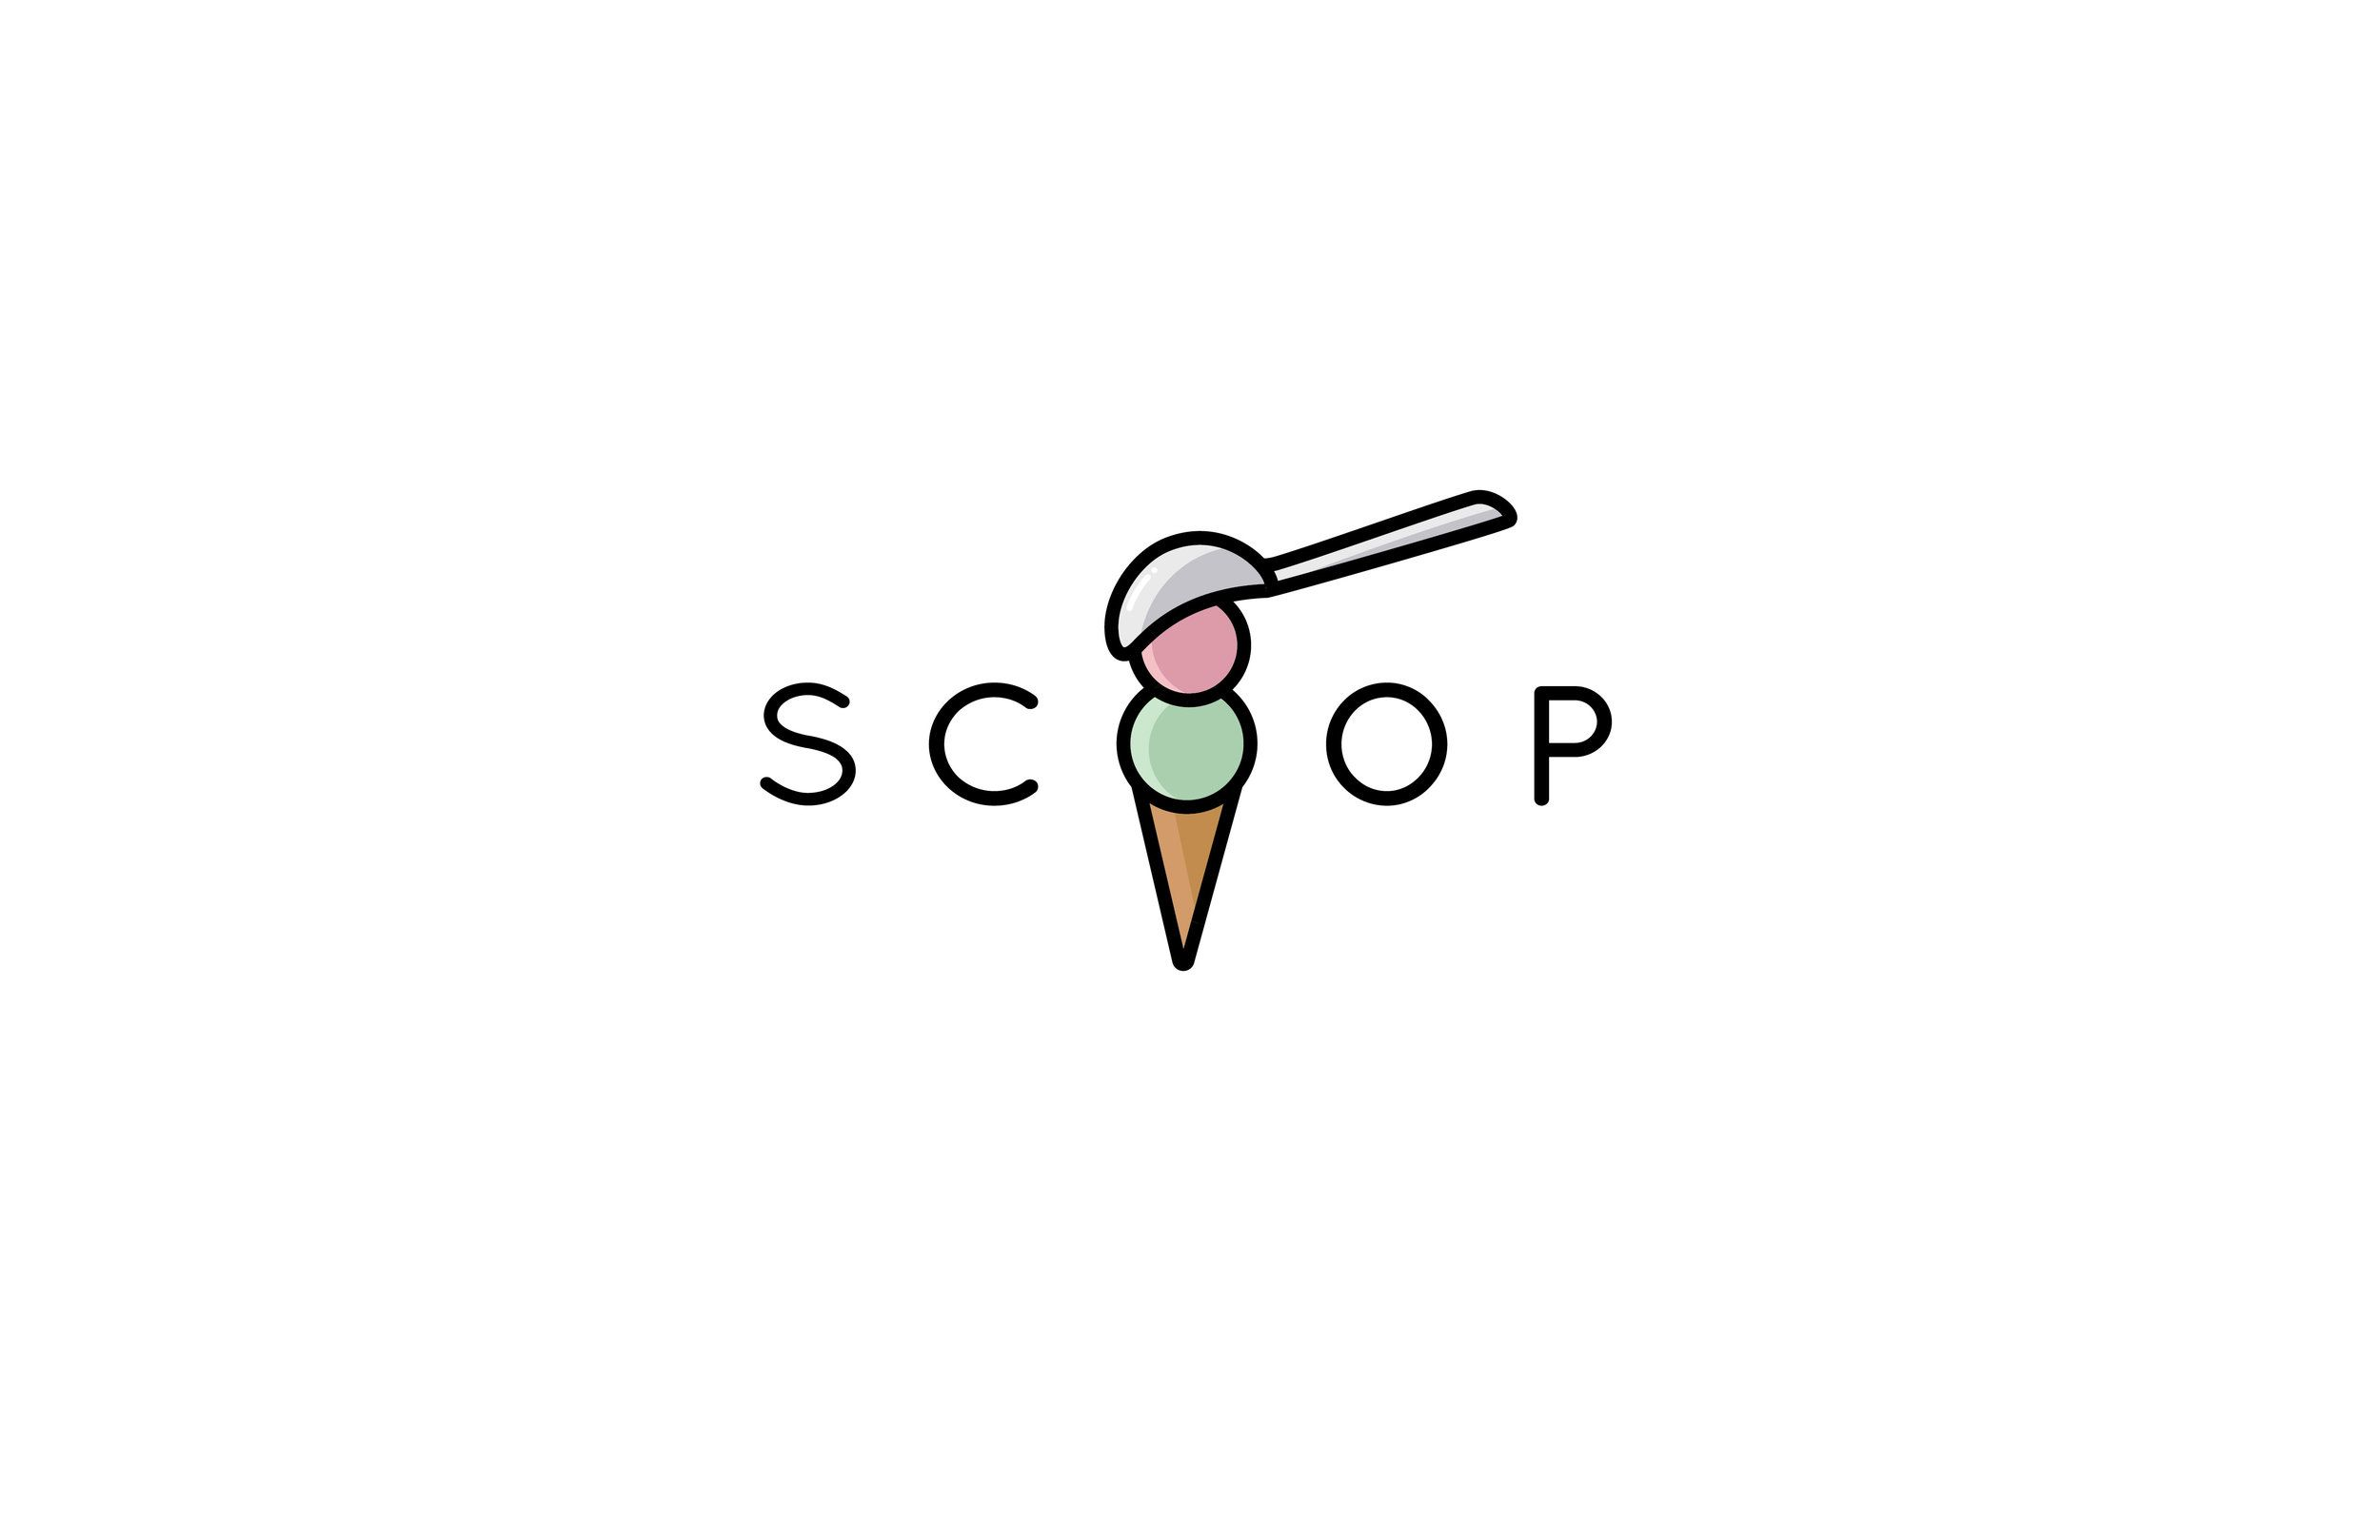 Ice Cream Shop Logo With Ice Cream Vector Illustration Design By Shelby Smeltzer Www Shelbysmeltzer Com Icecream Ice Cream Shop Ice Cream Logo Shop Logo